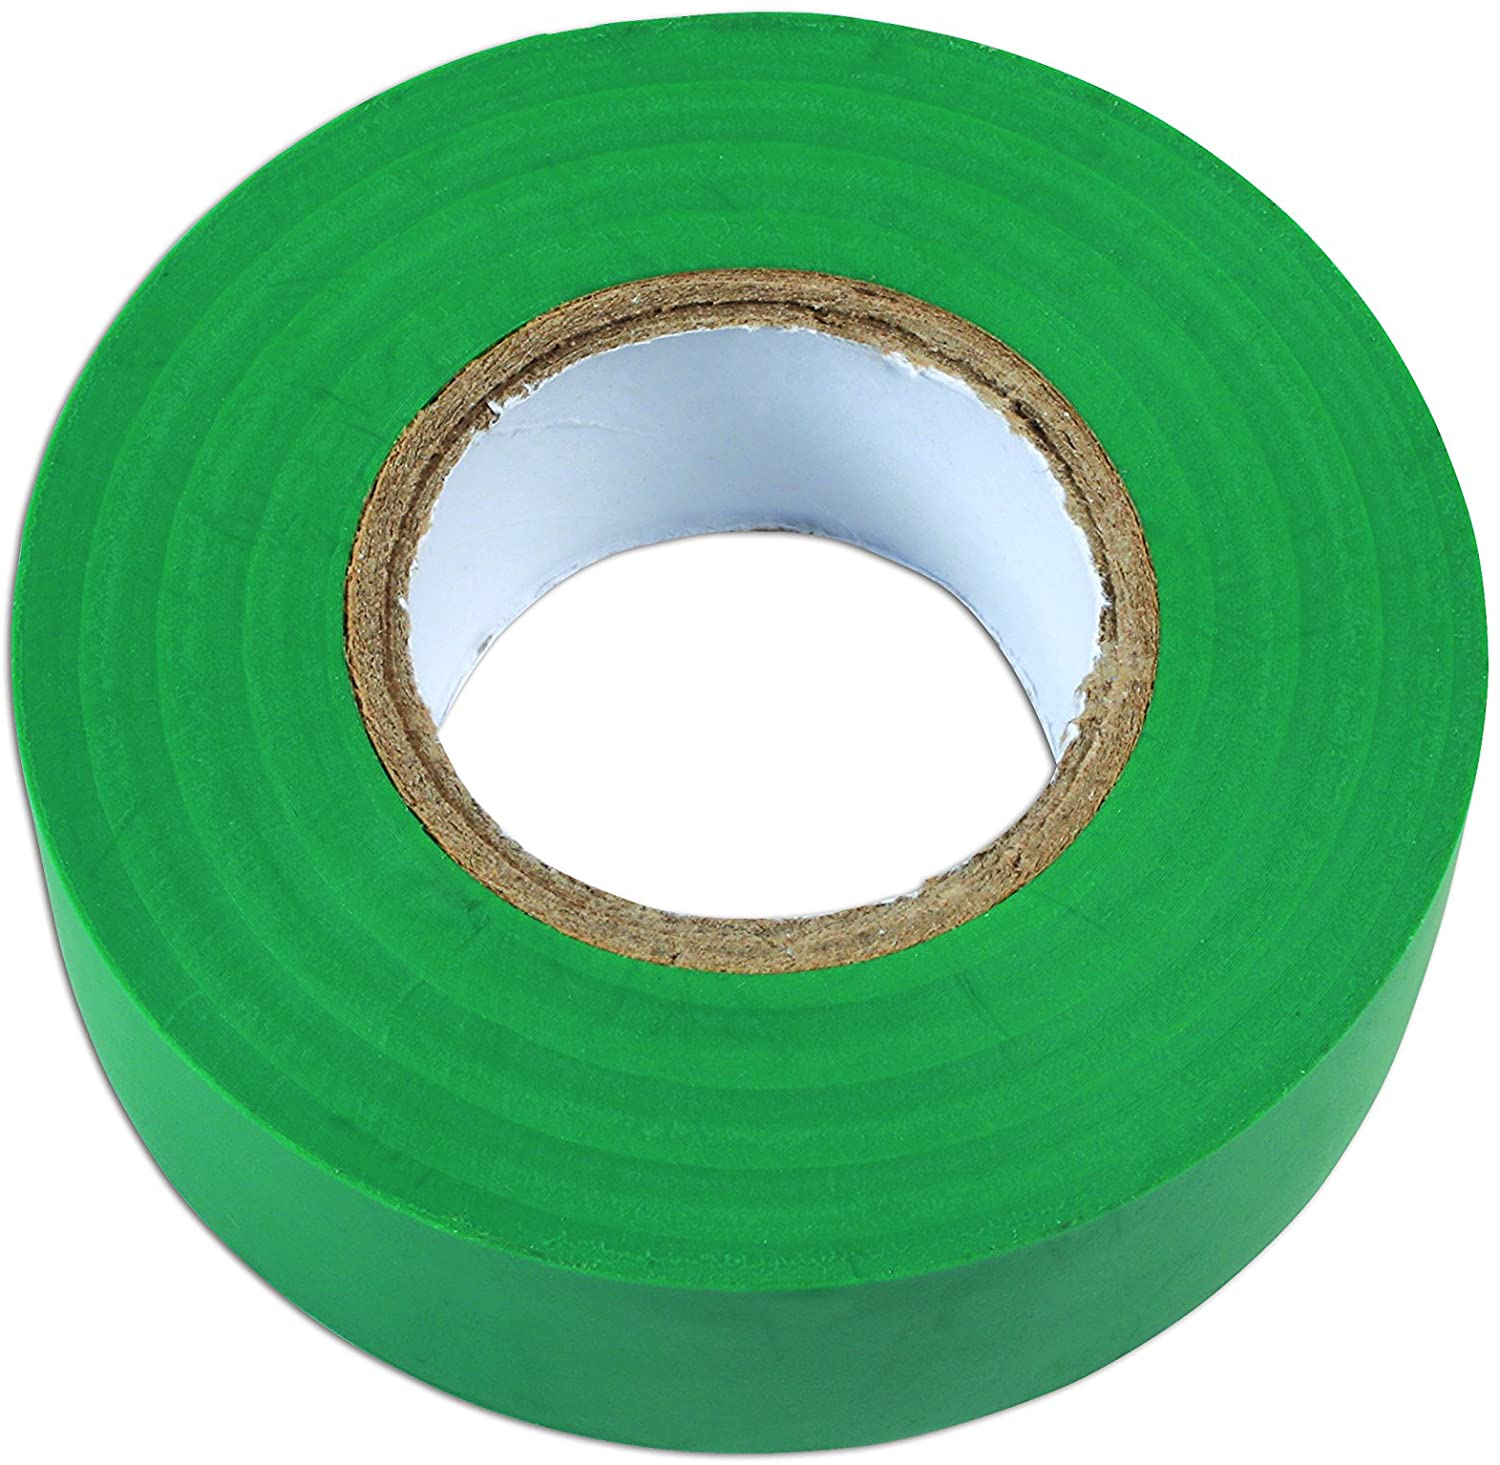 Connect Workshop Consumables Connect Consumables 36890 Green PVC Insulation Tape 19mm x 20m Pk 1